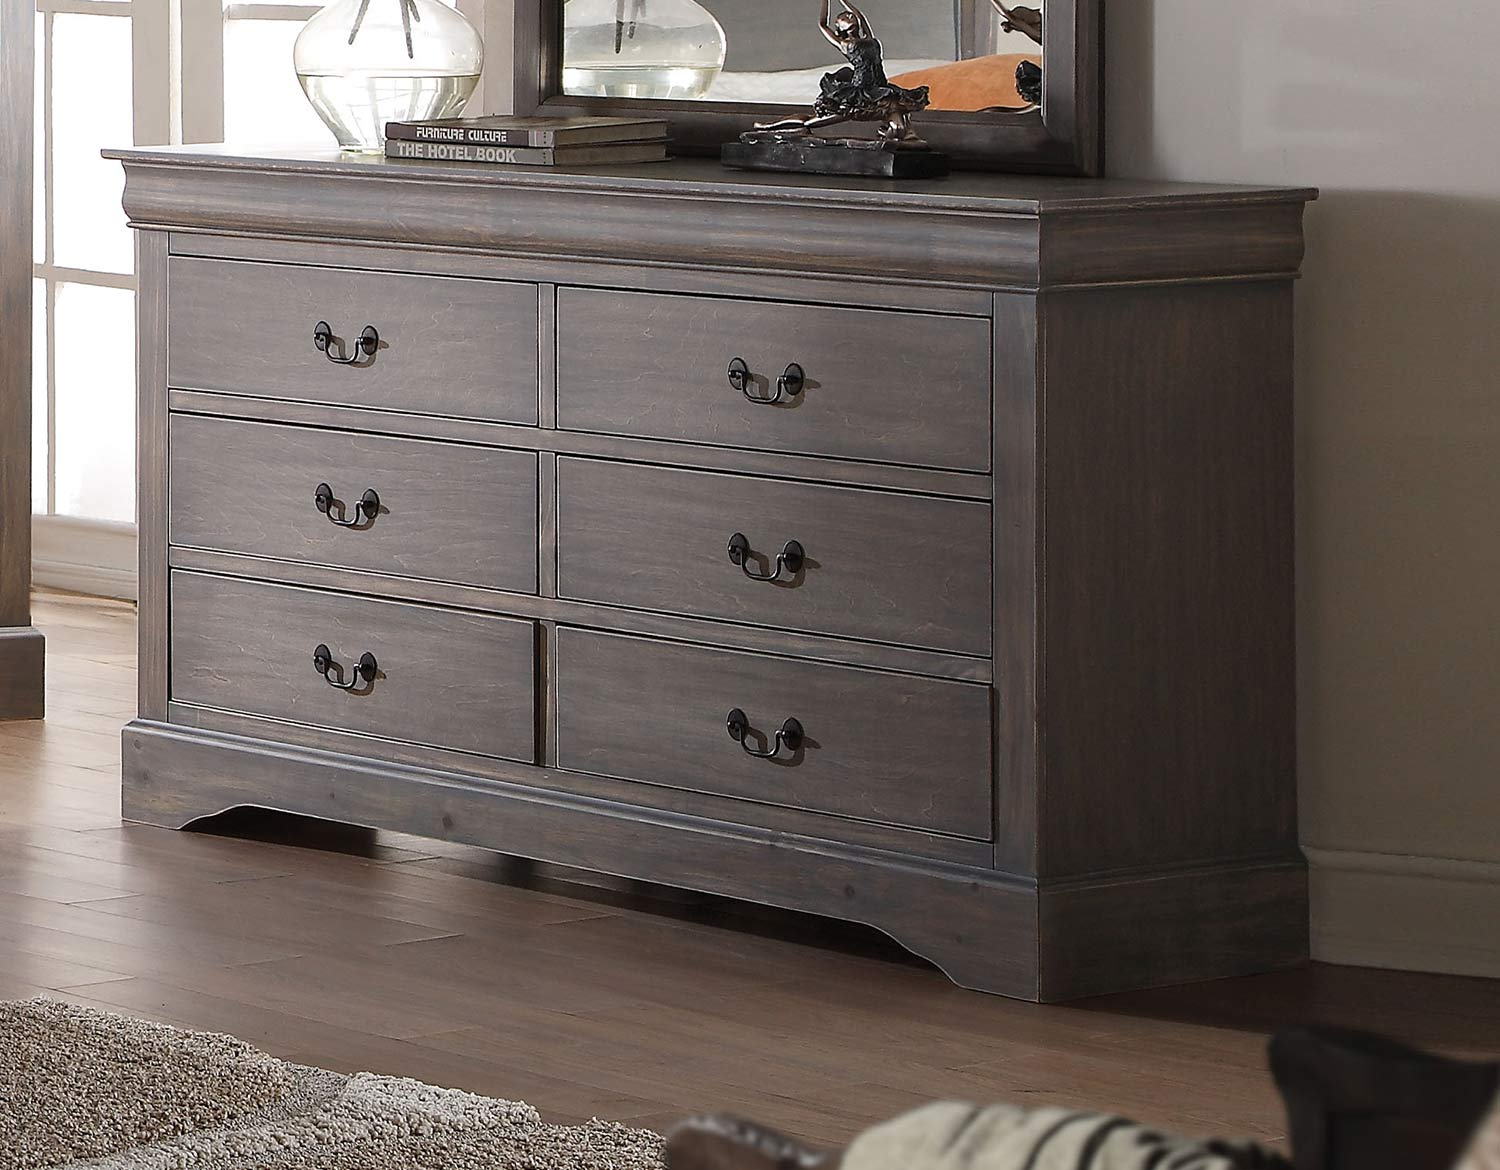 Acme Louis Philippe III Dresser - Antique Gray